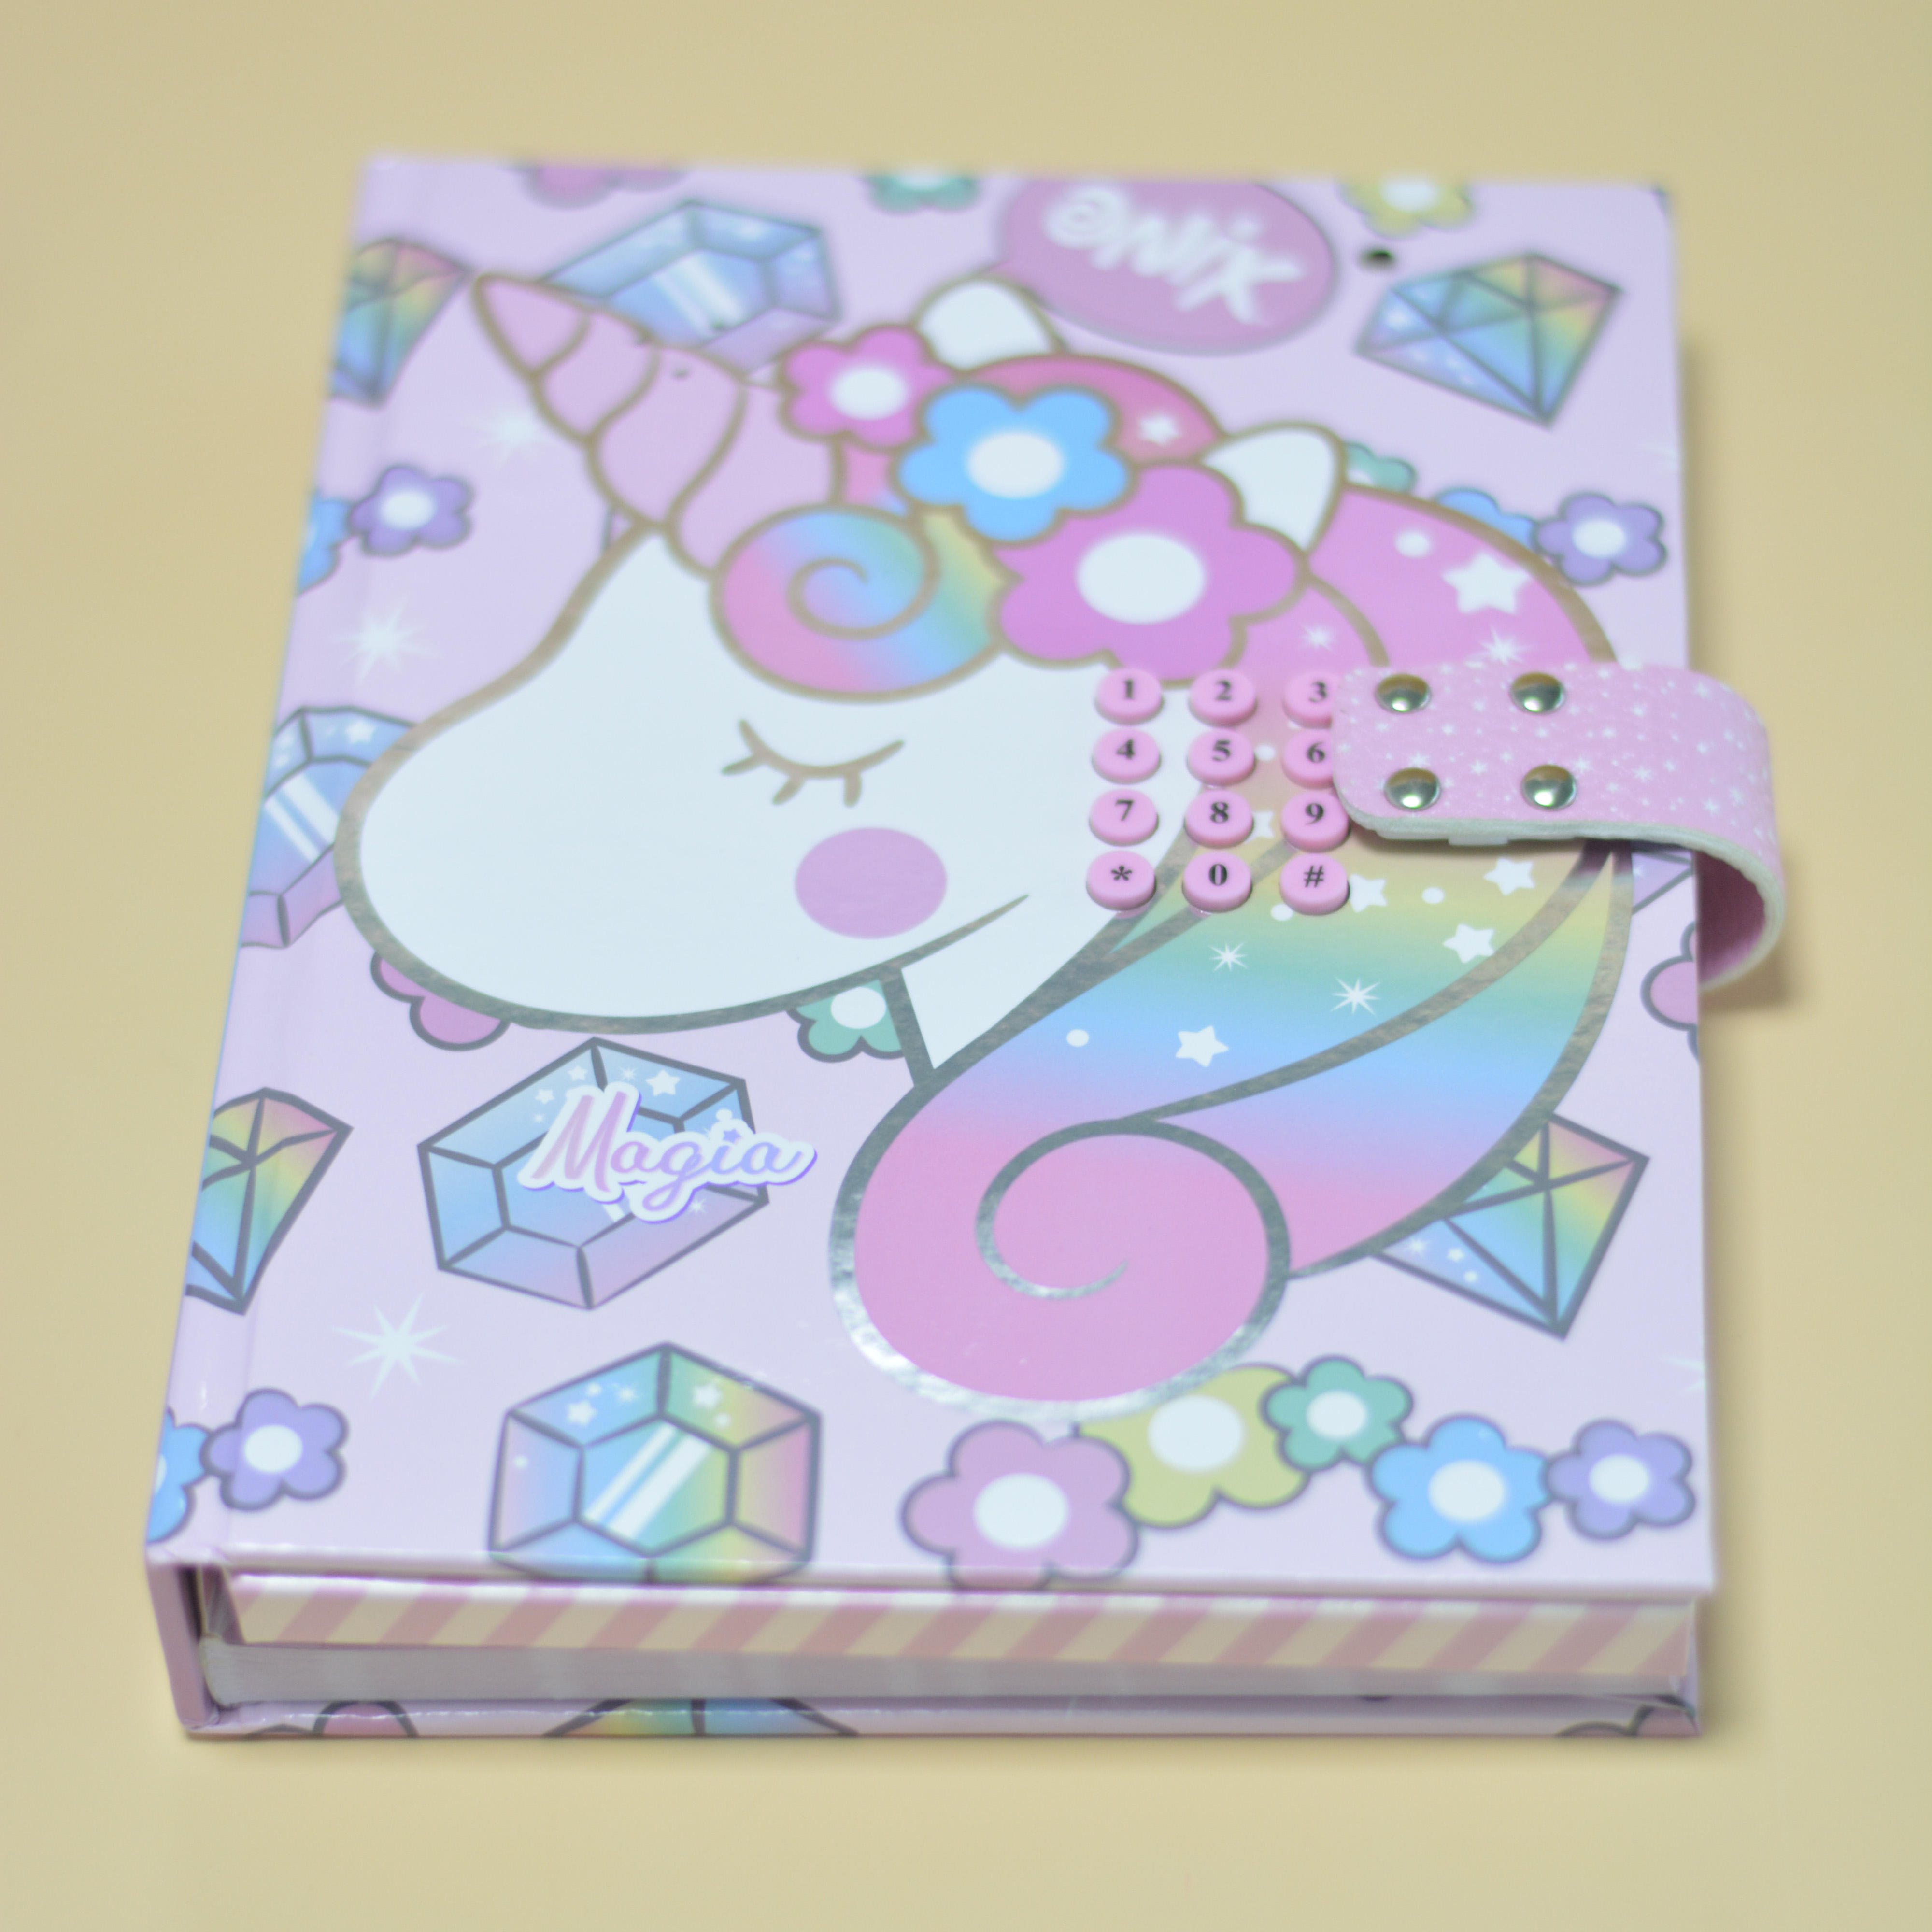 2020 New Style Hot Sale Luxury Customised Unicorn Secret Diary with Code Lock